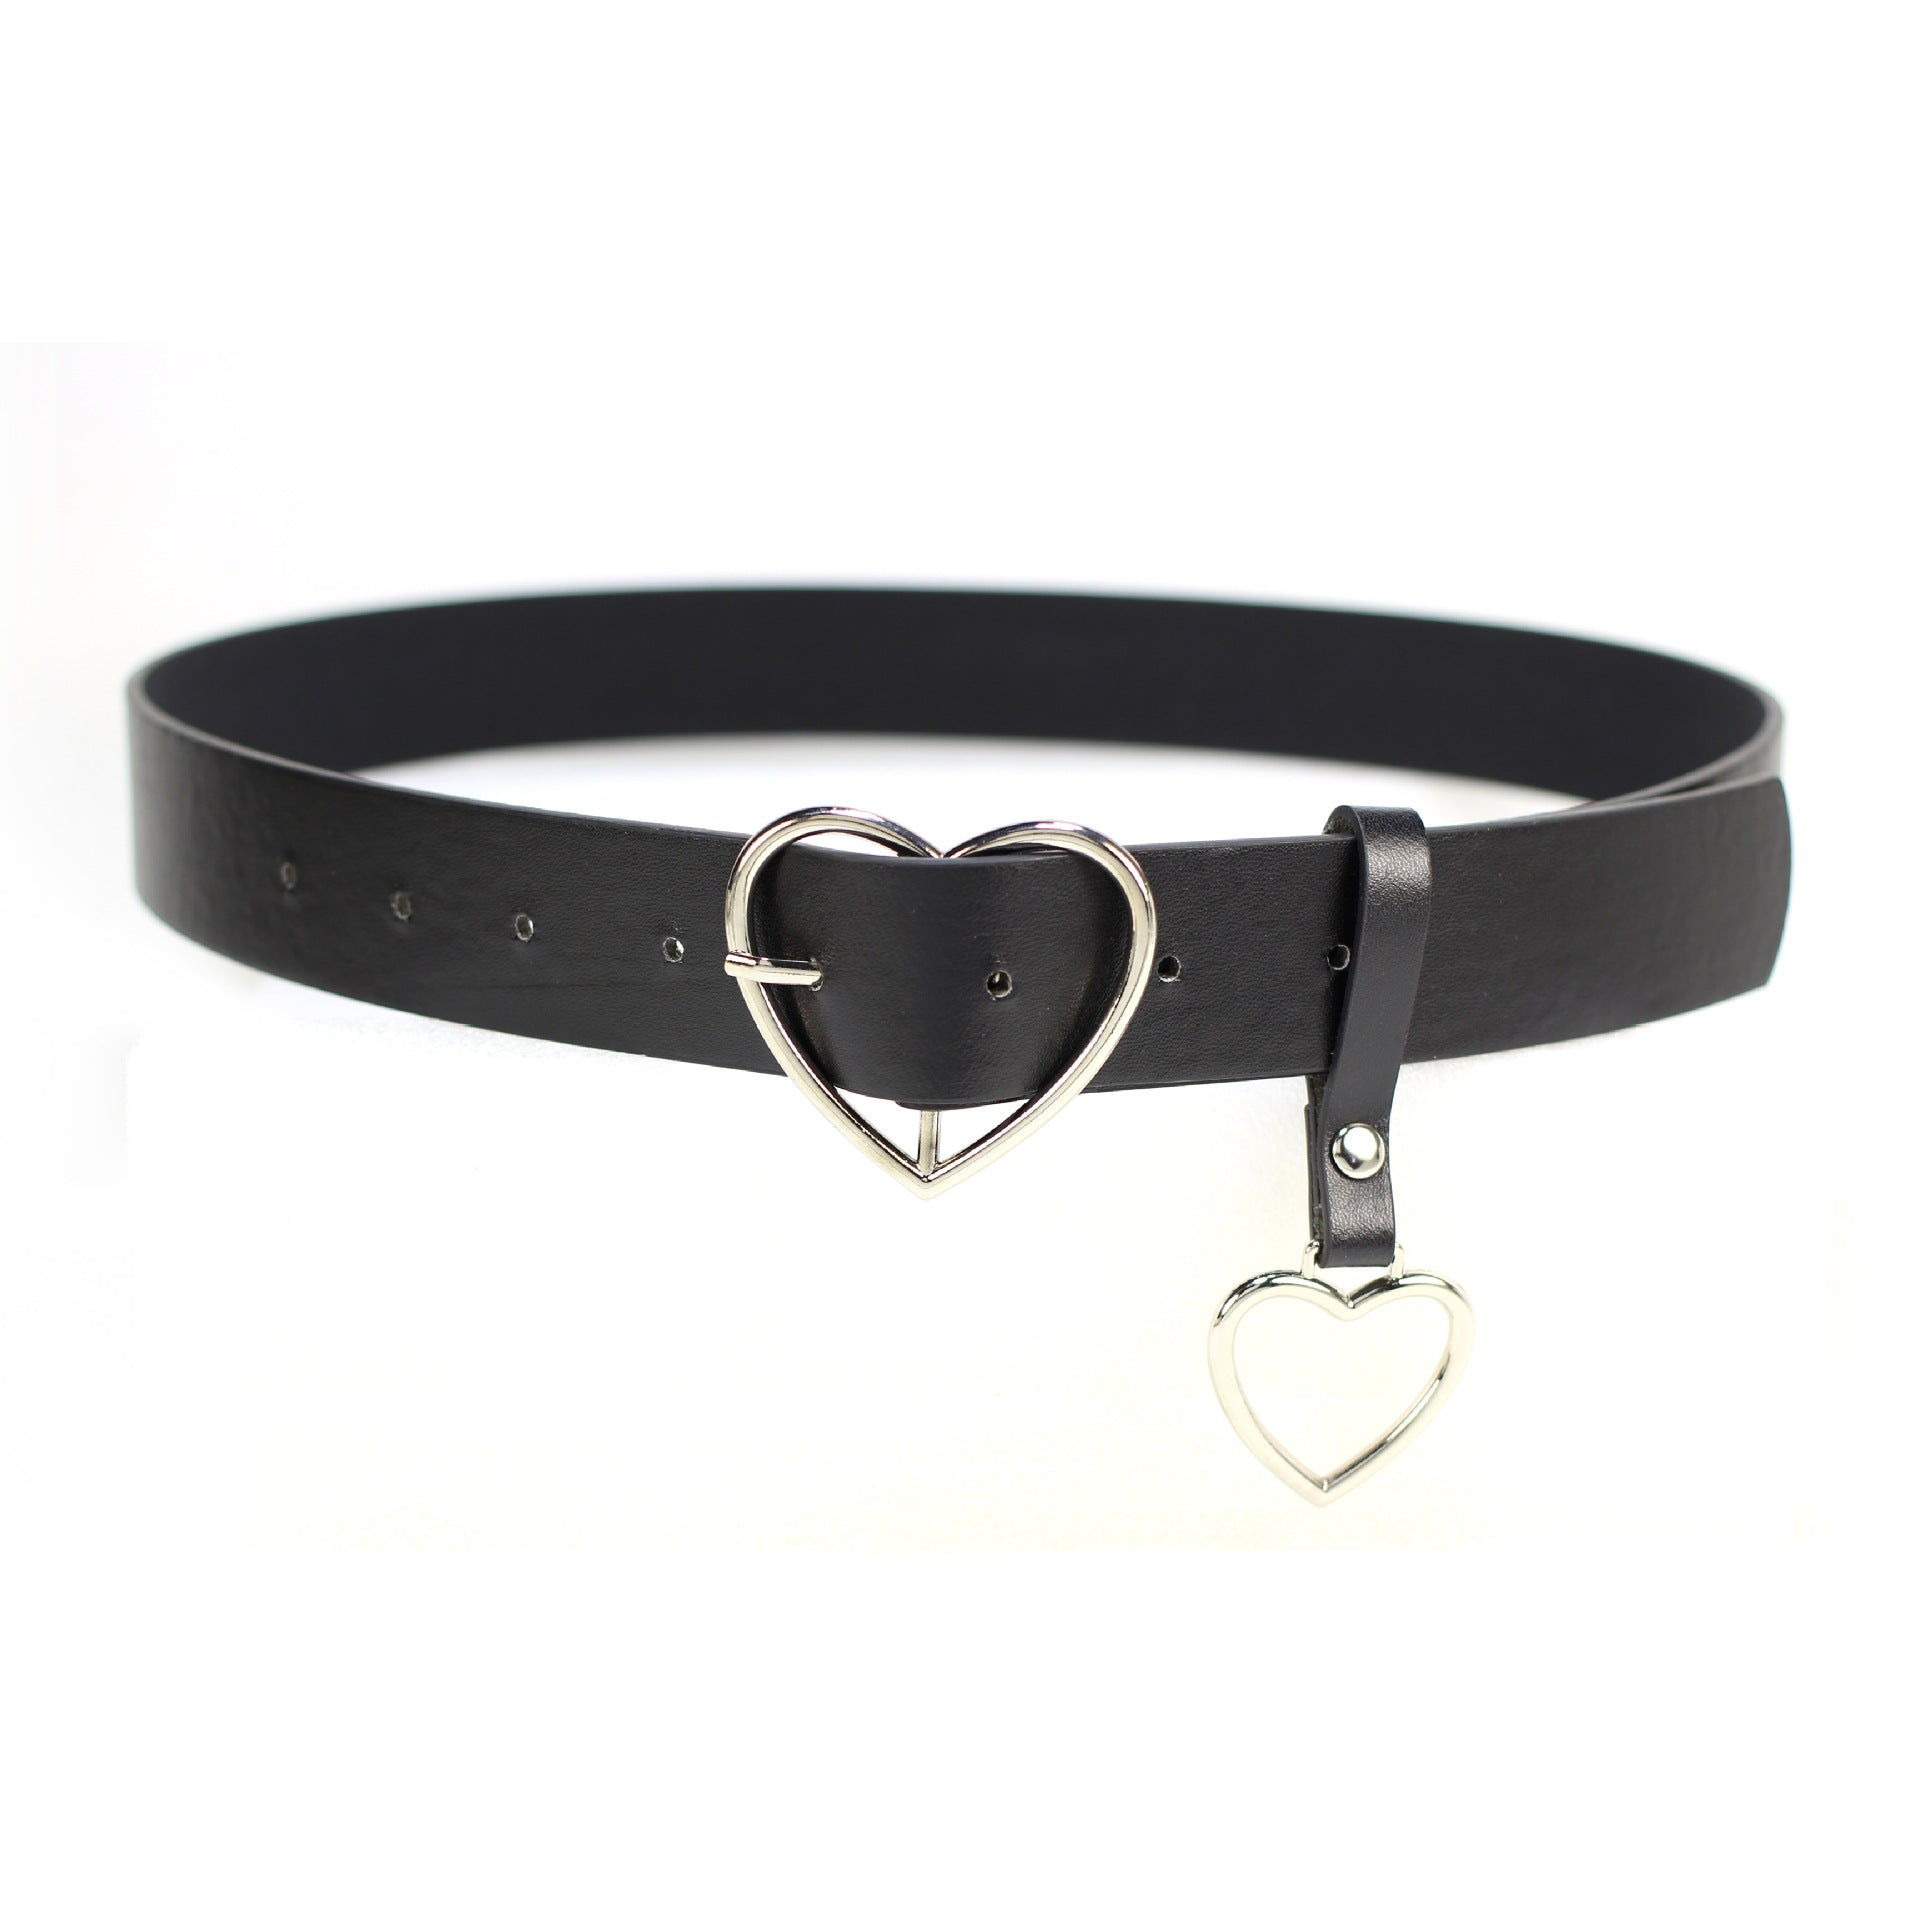 PU Leather Heart Belt